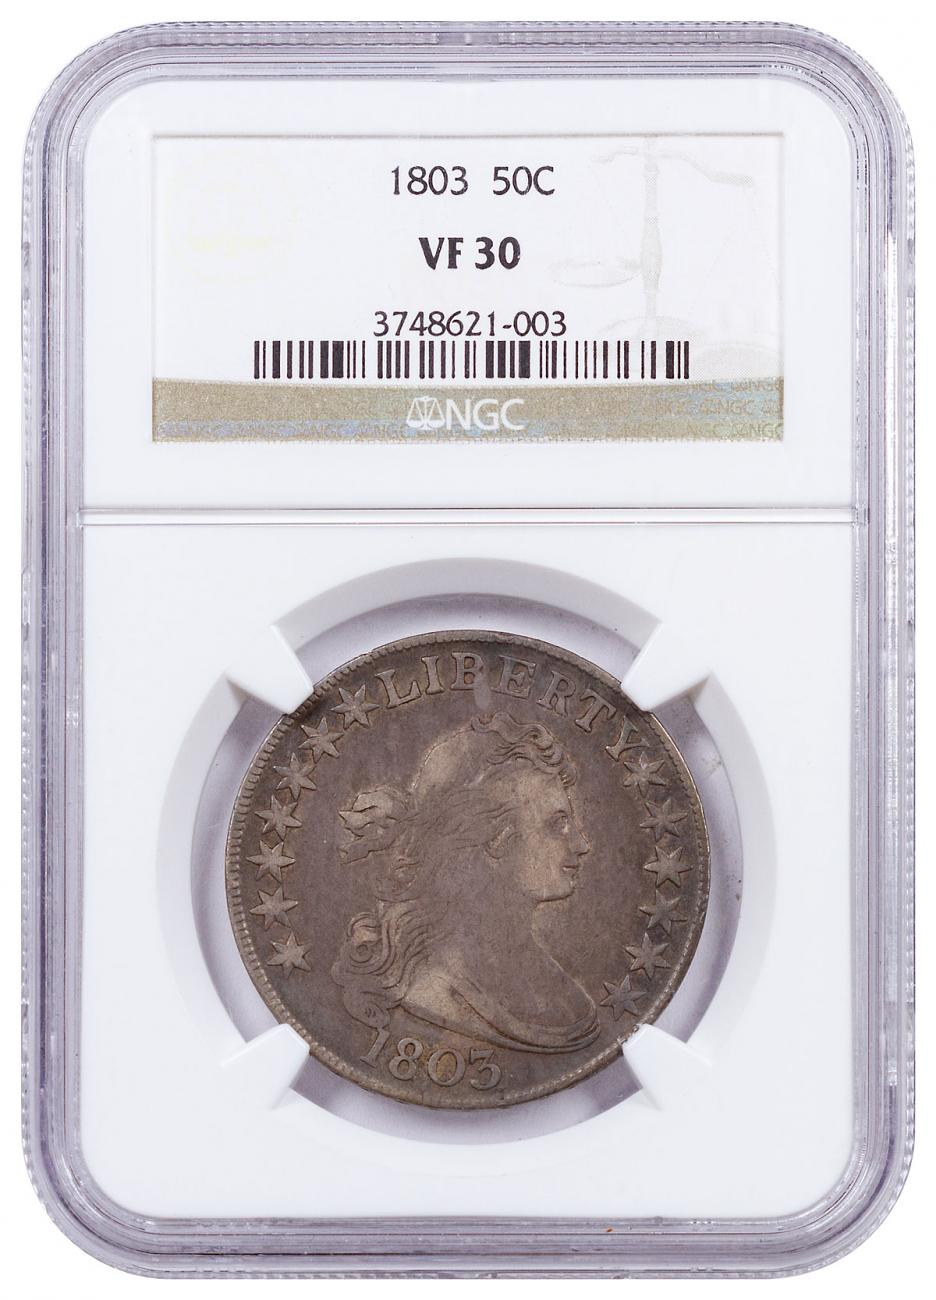 1803 Silver Large Eagle Draped Bust Half Dollar NGC VF30 Brown Label